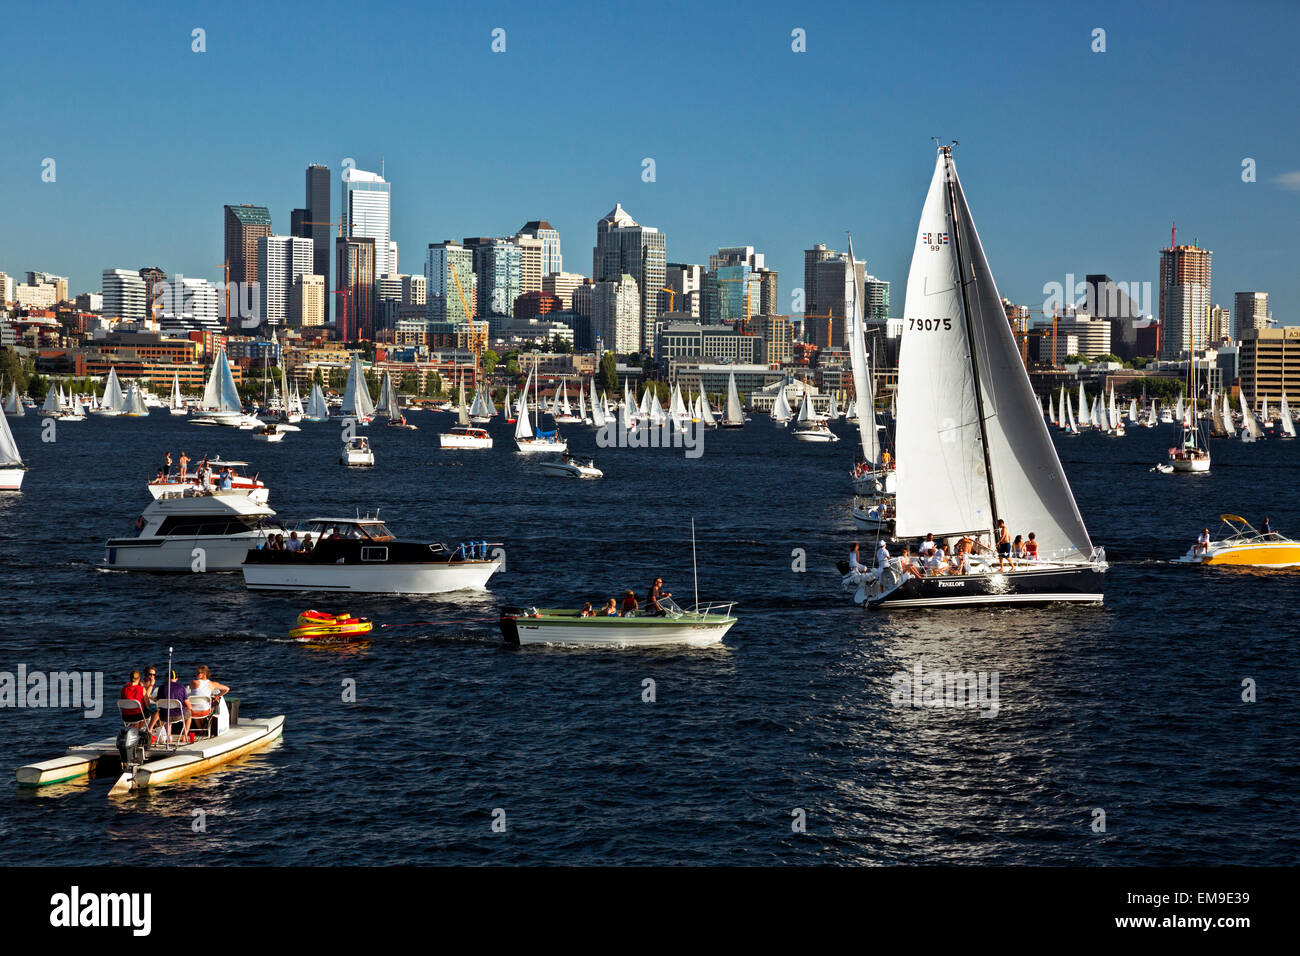 WA10378-00...WASHINGTON - Busy evening on Lake Union as the sailboats prepare for the Tuesday Duck Dodge in Seattle. - Stock Image